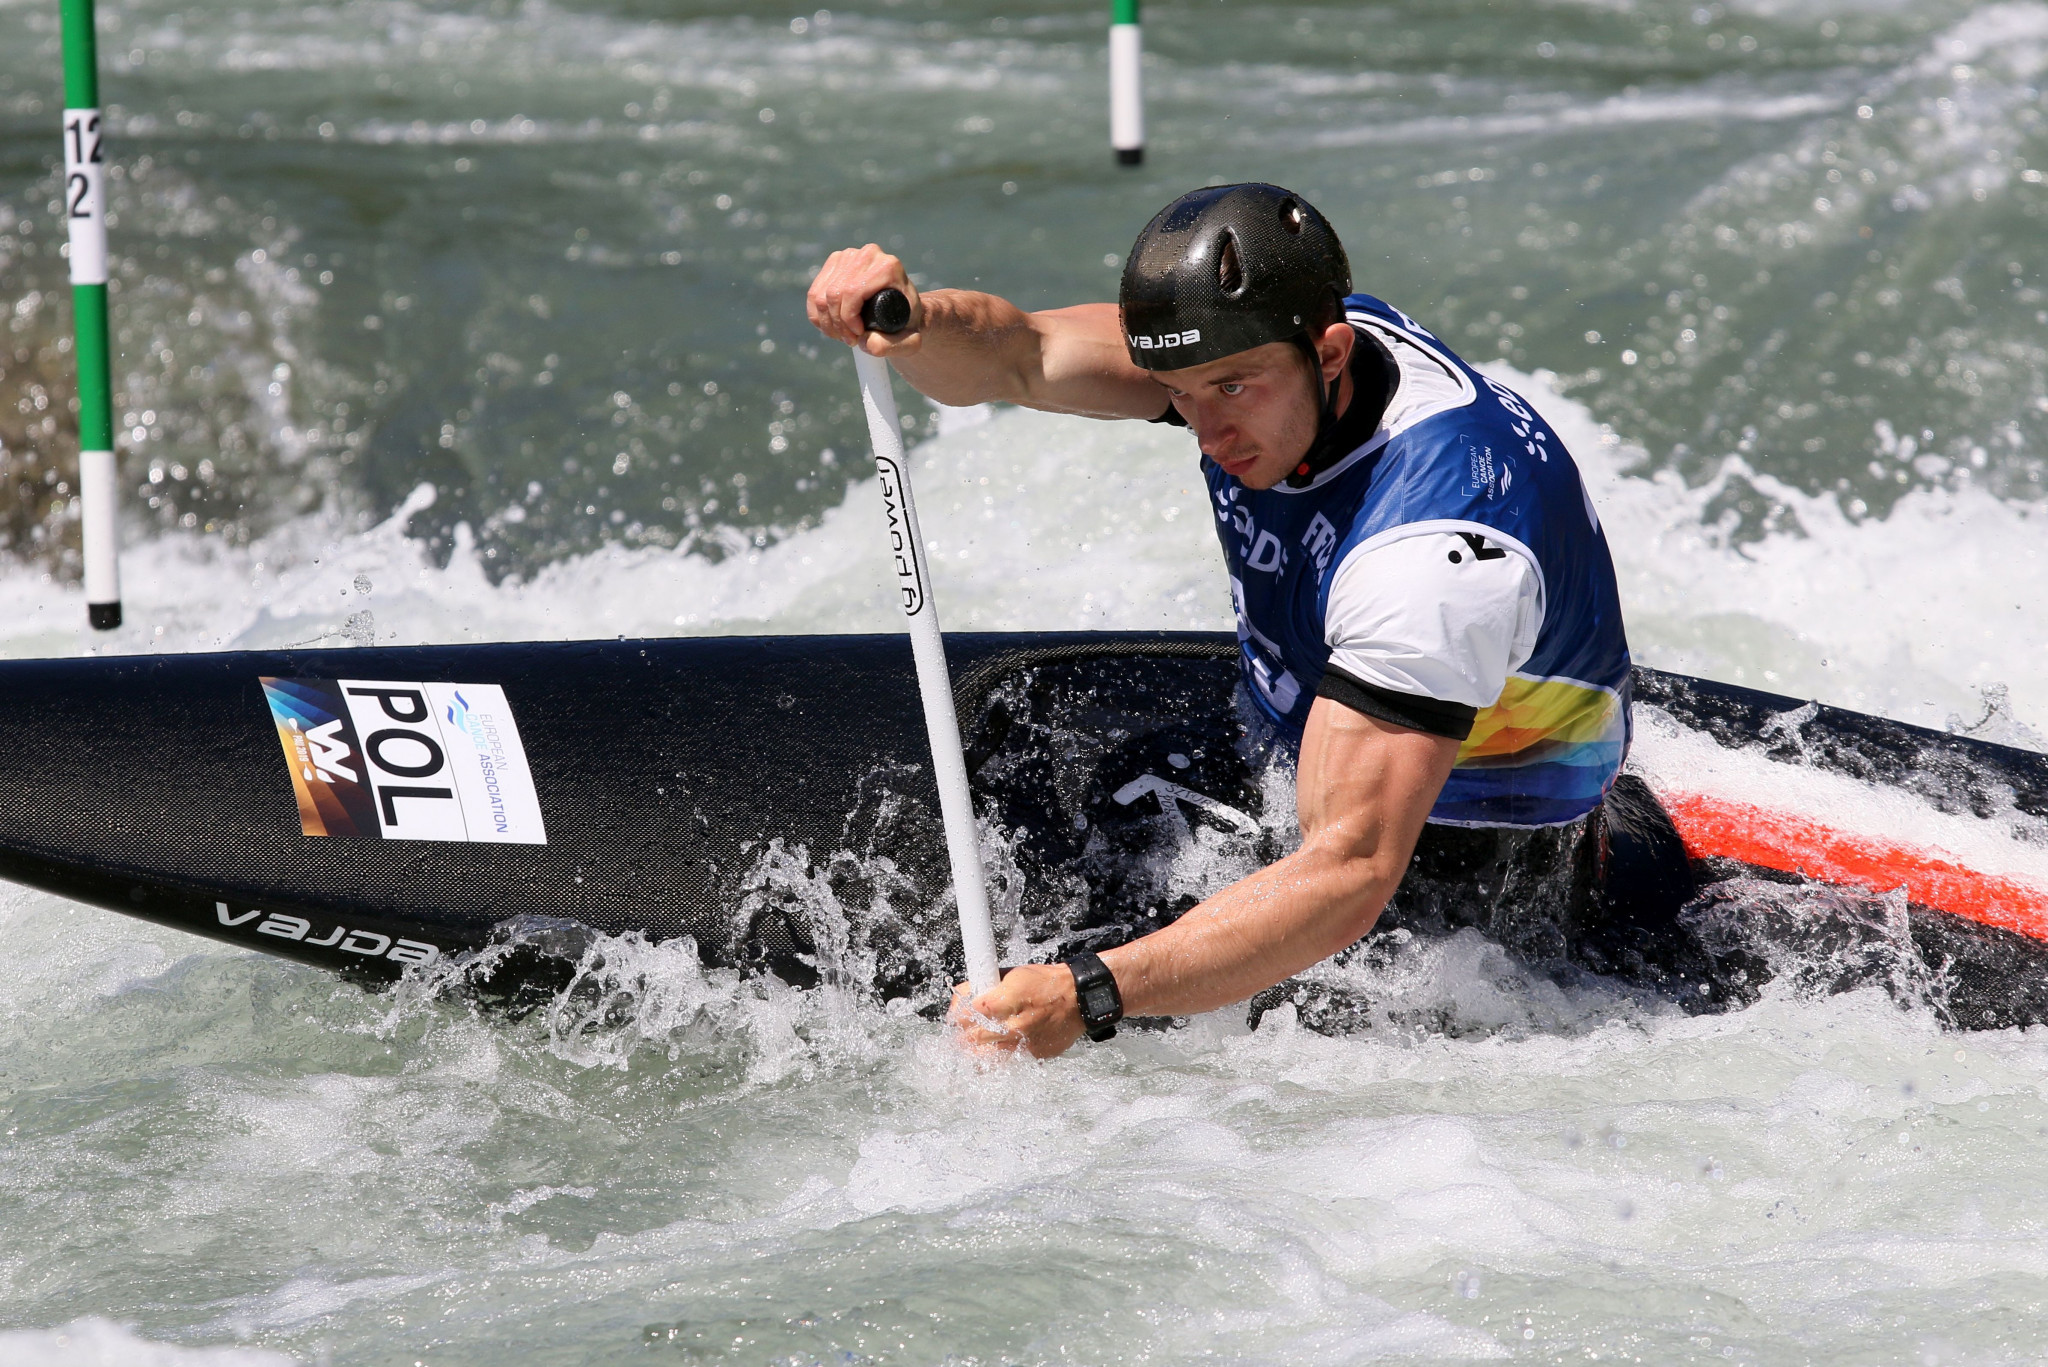 Disappointment for French Olympic gold medallist as European Canoe Slalom Championships begin in Pau